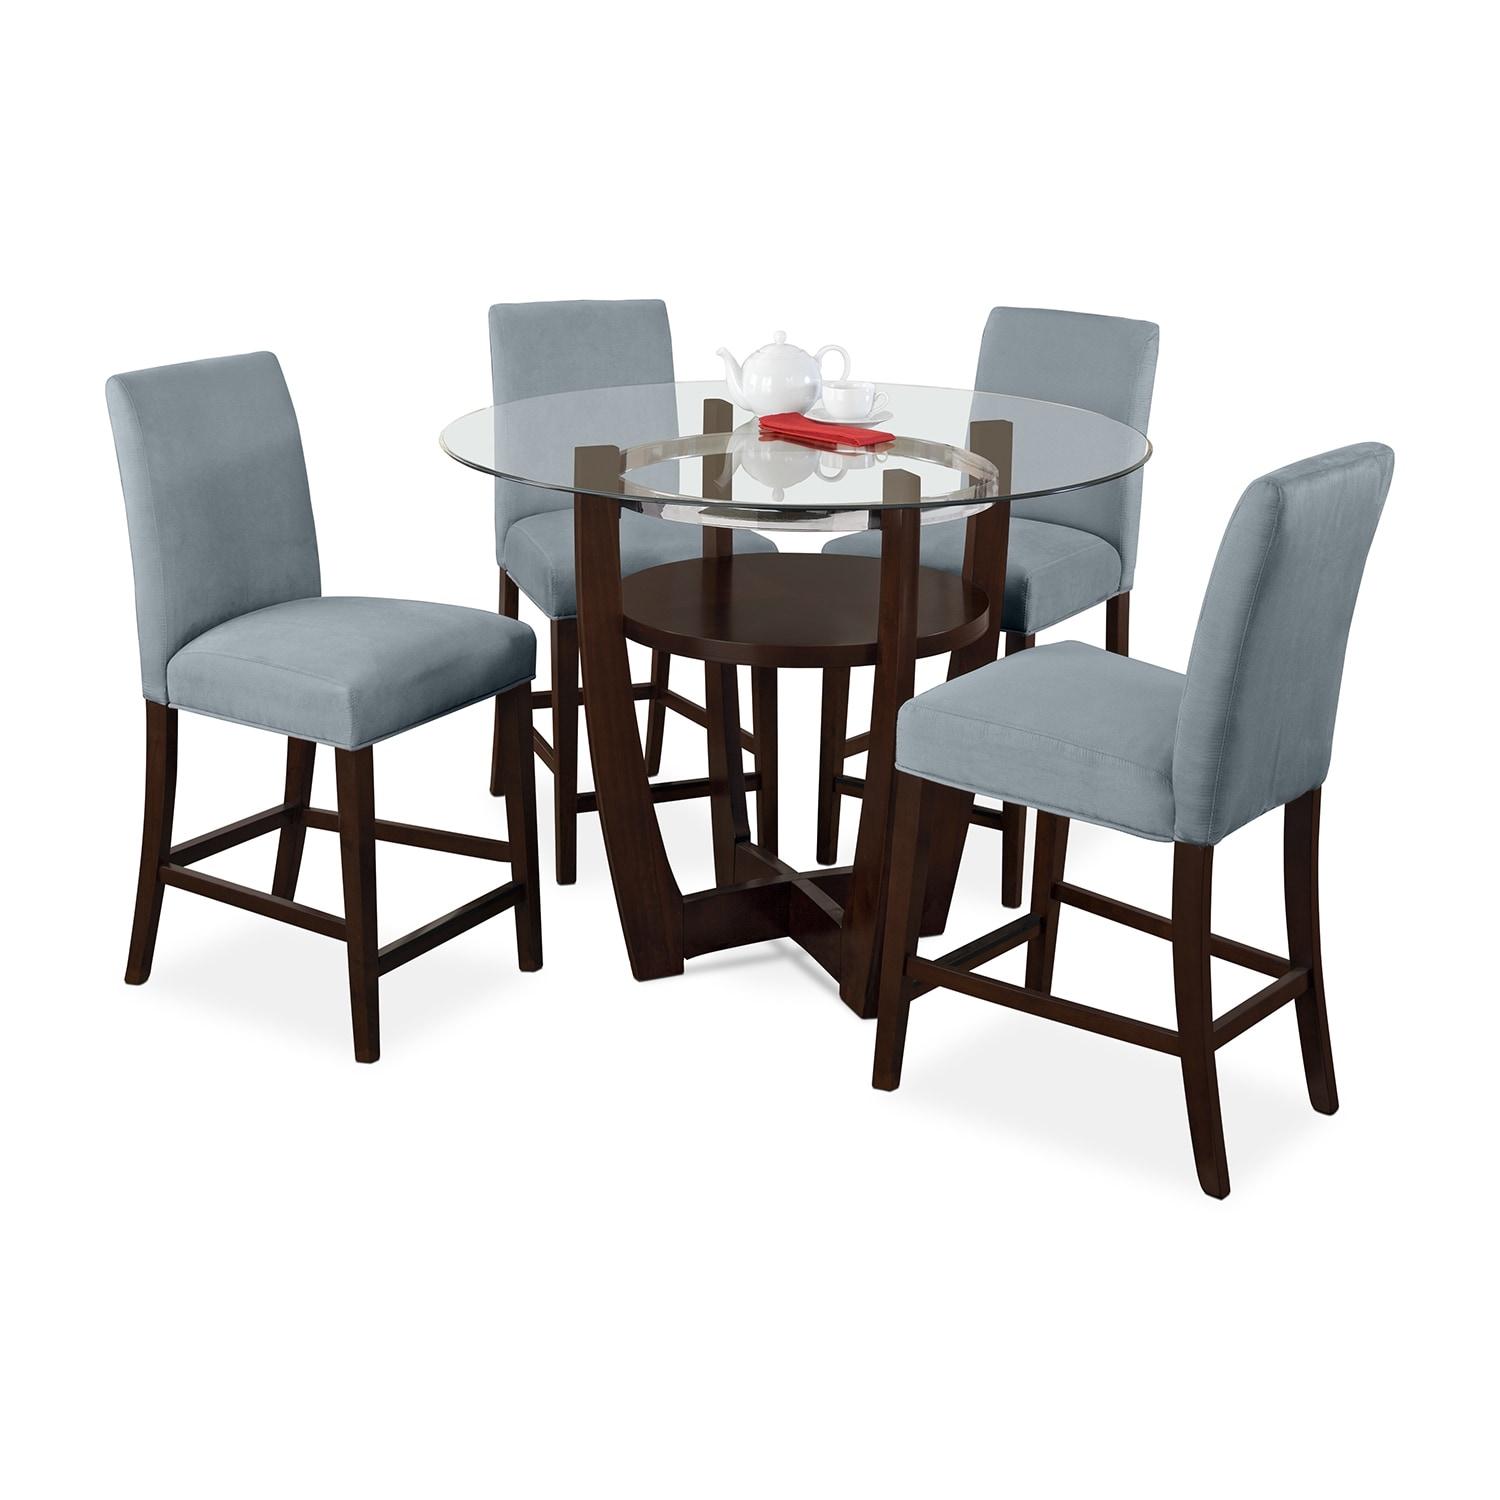 Dining Room Furniture - Alcove Counter-Height Dinette with Four Side Chairs - Aqua